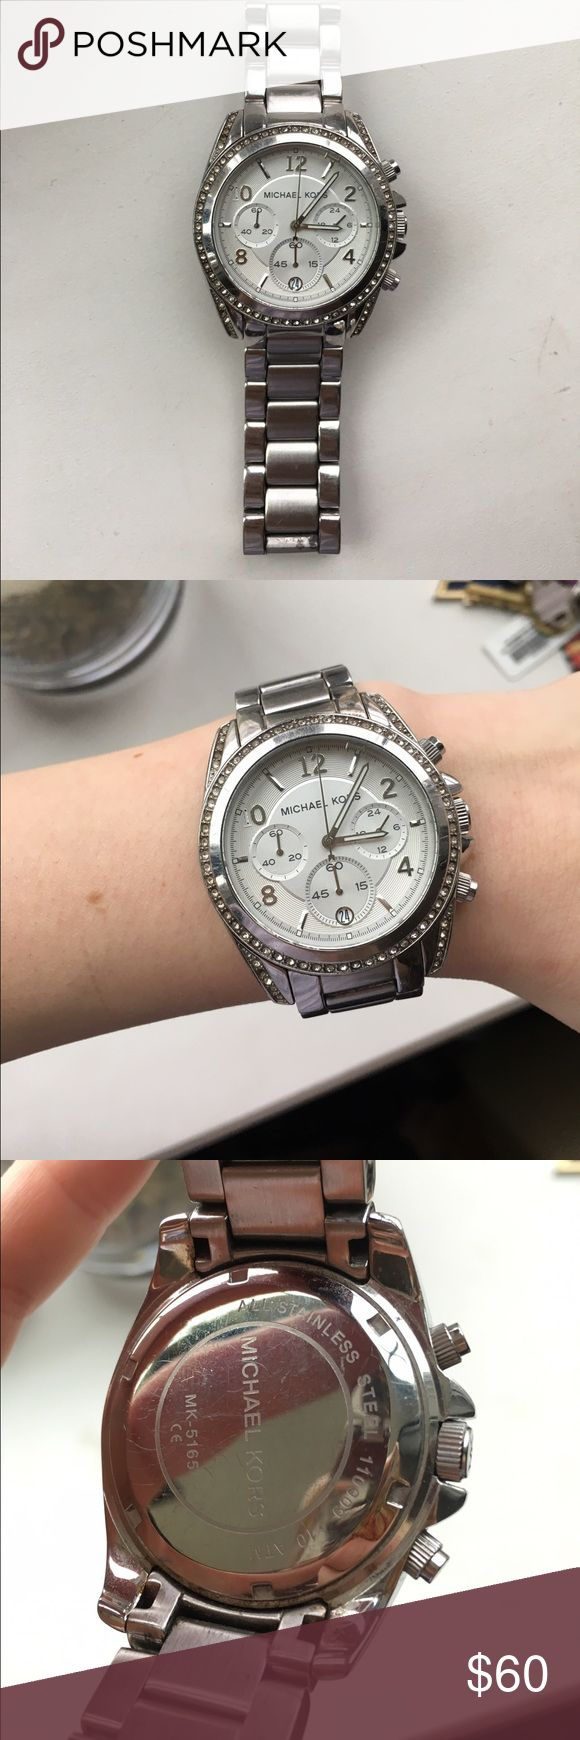 Michael Kors Silver Watch Michael Kors women's chronograph stainless steel watch in silver. Batteries are dead. A few stones are missing. Overall in pretty good condition. Michael Kors Jewelry